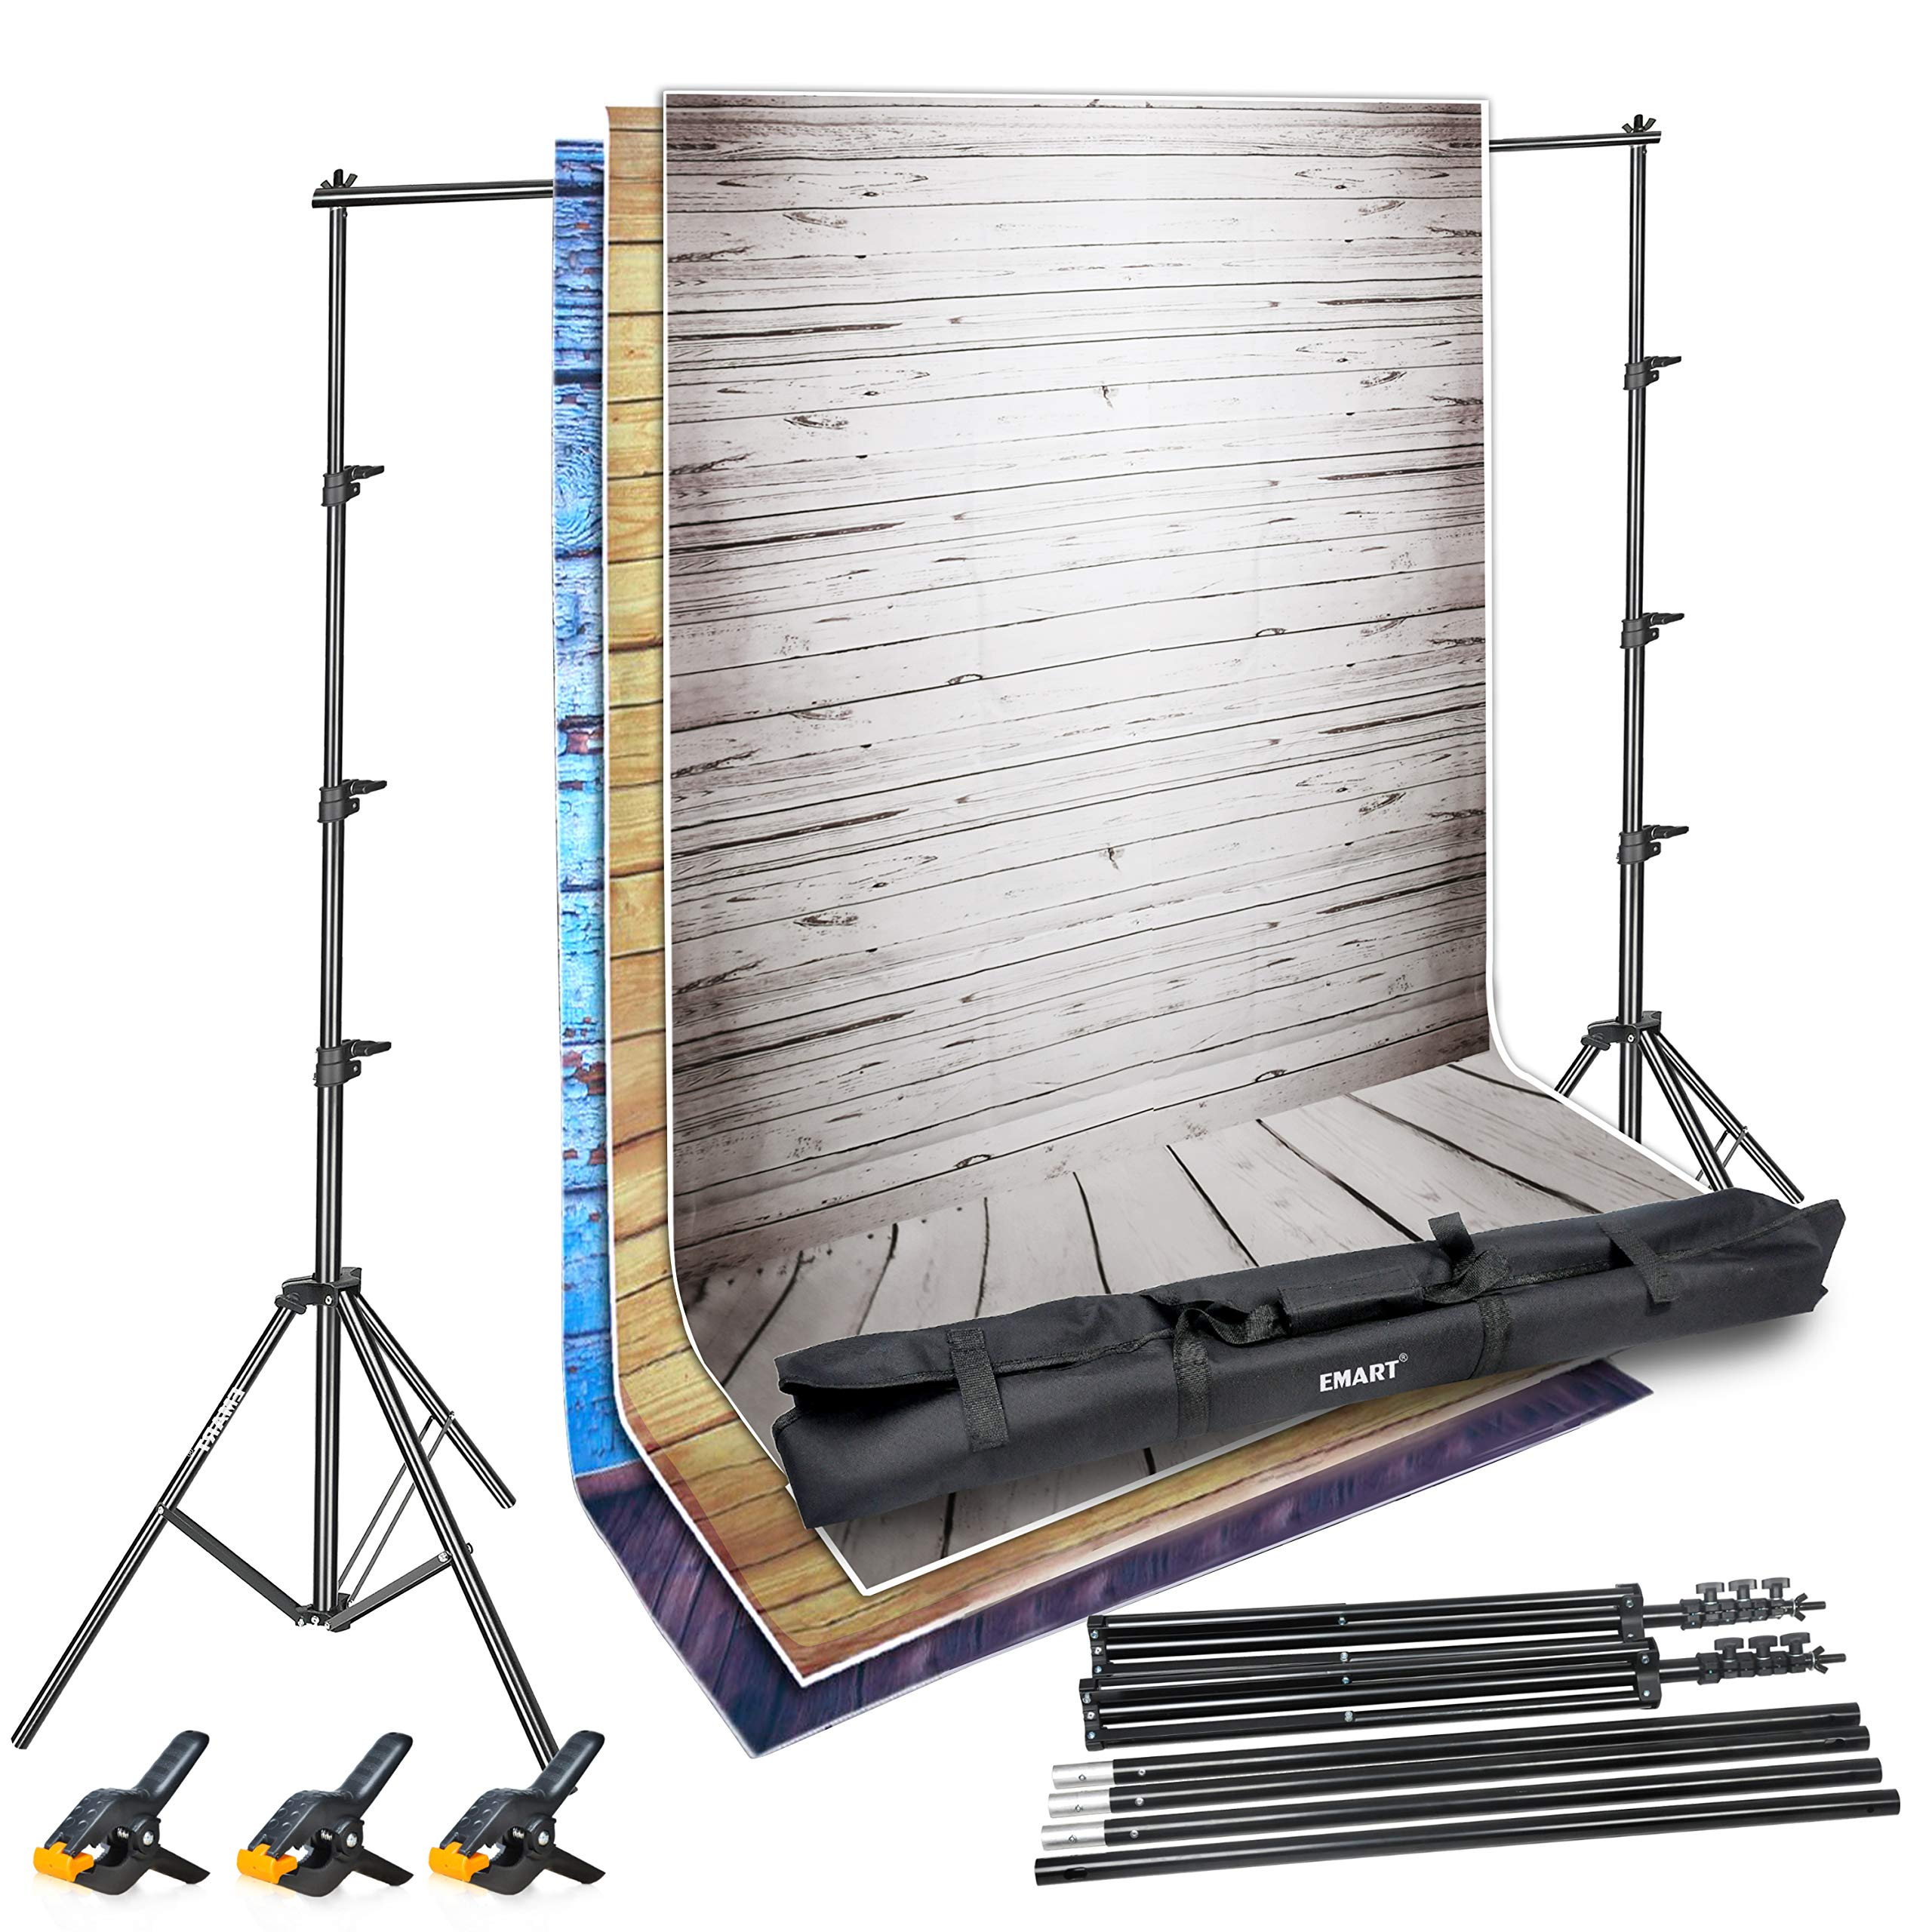 Emart Photo Video Studio Backdrop Stand Kit, 8.5 x 10ft Adjustable Photography Background Support System, 3 pcs 5x10ft Vinyl Plastic Wood Floor Screens (Blue, Rustic, White) and 3 pcs Spring Clamps by EMART